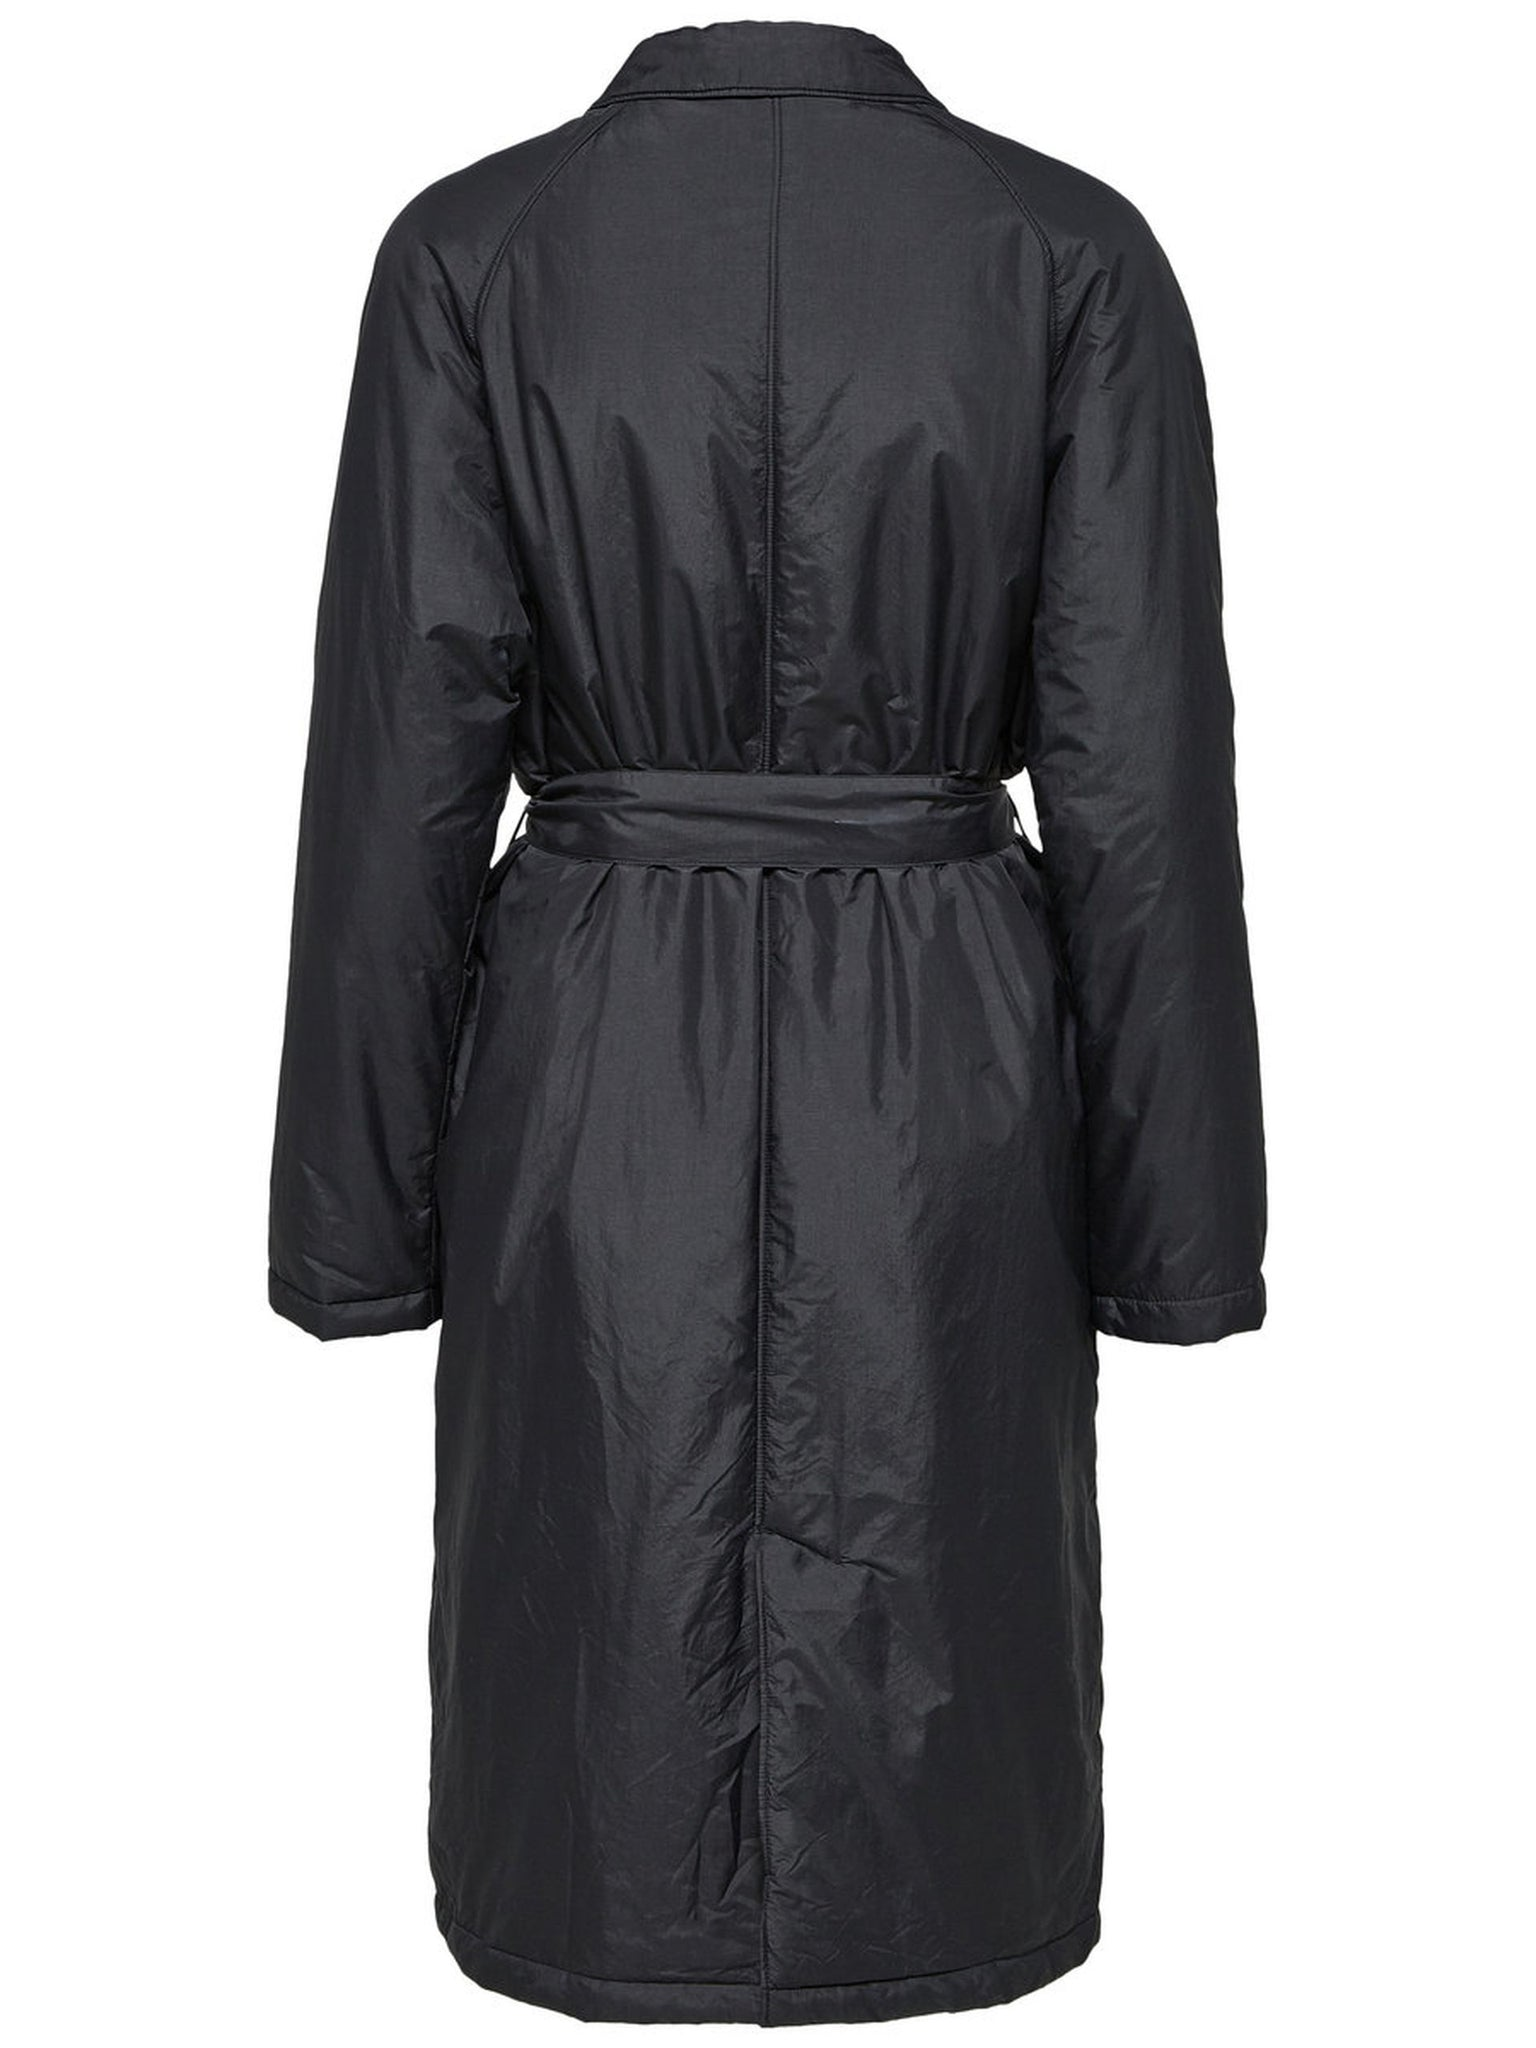 Alfia Coat in Black